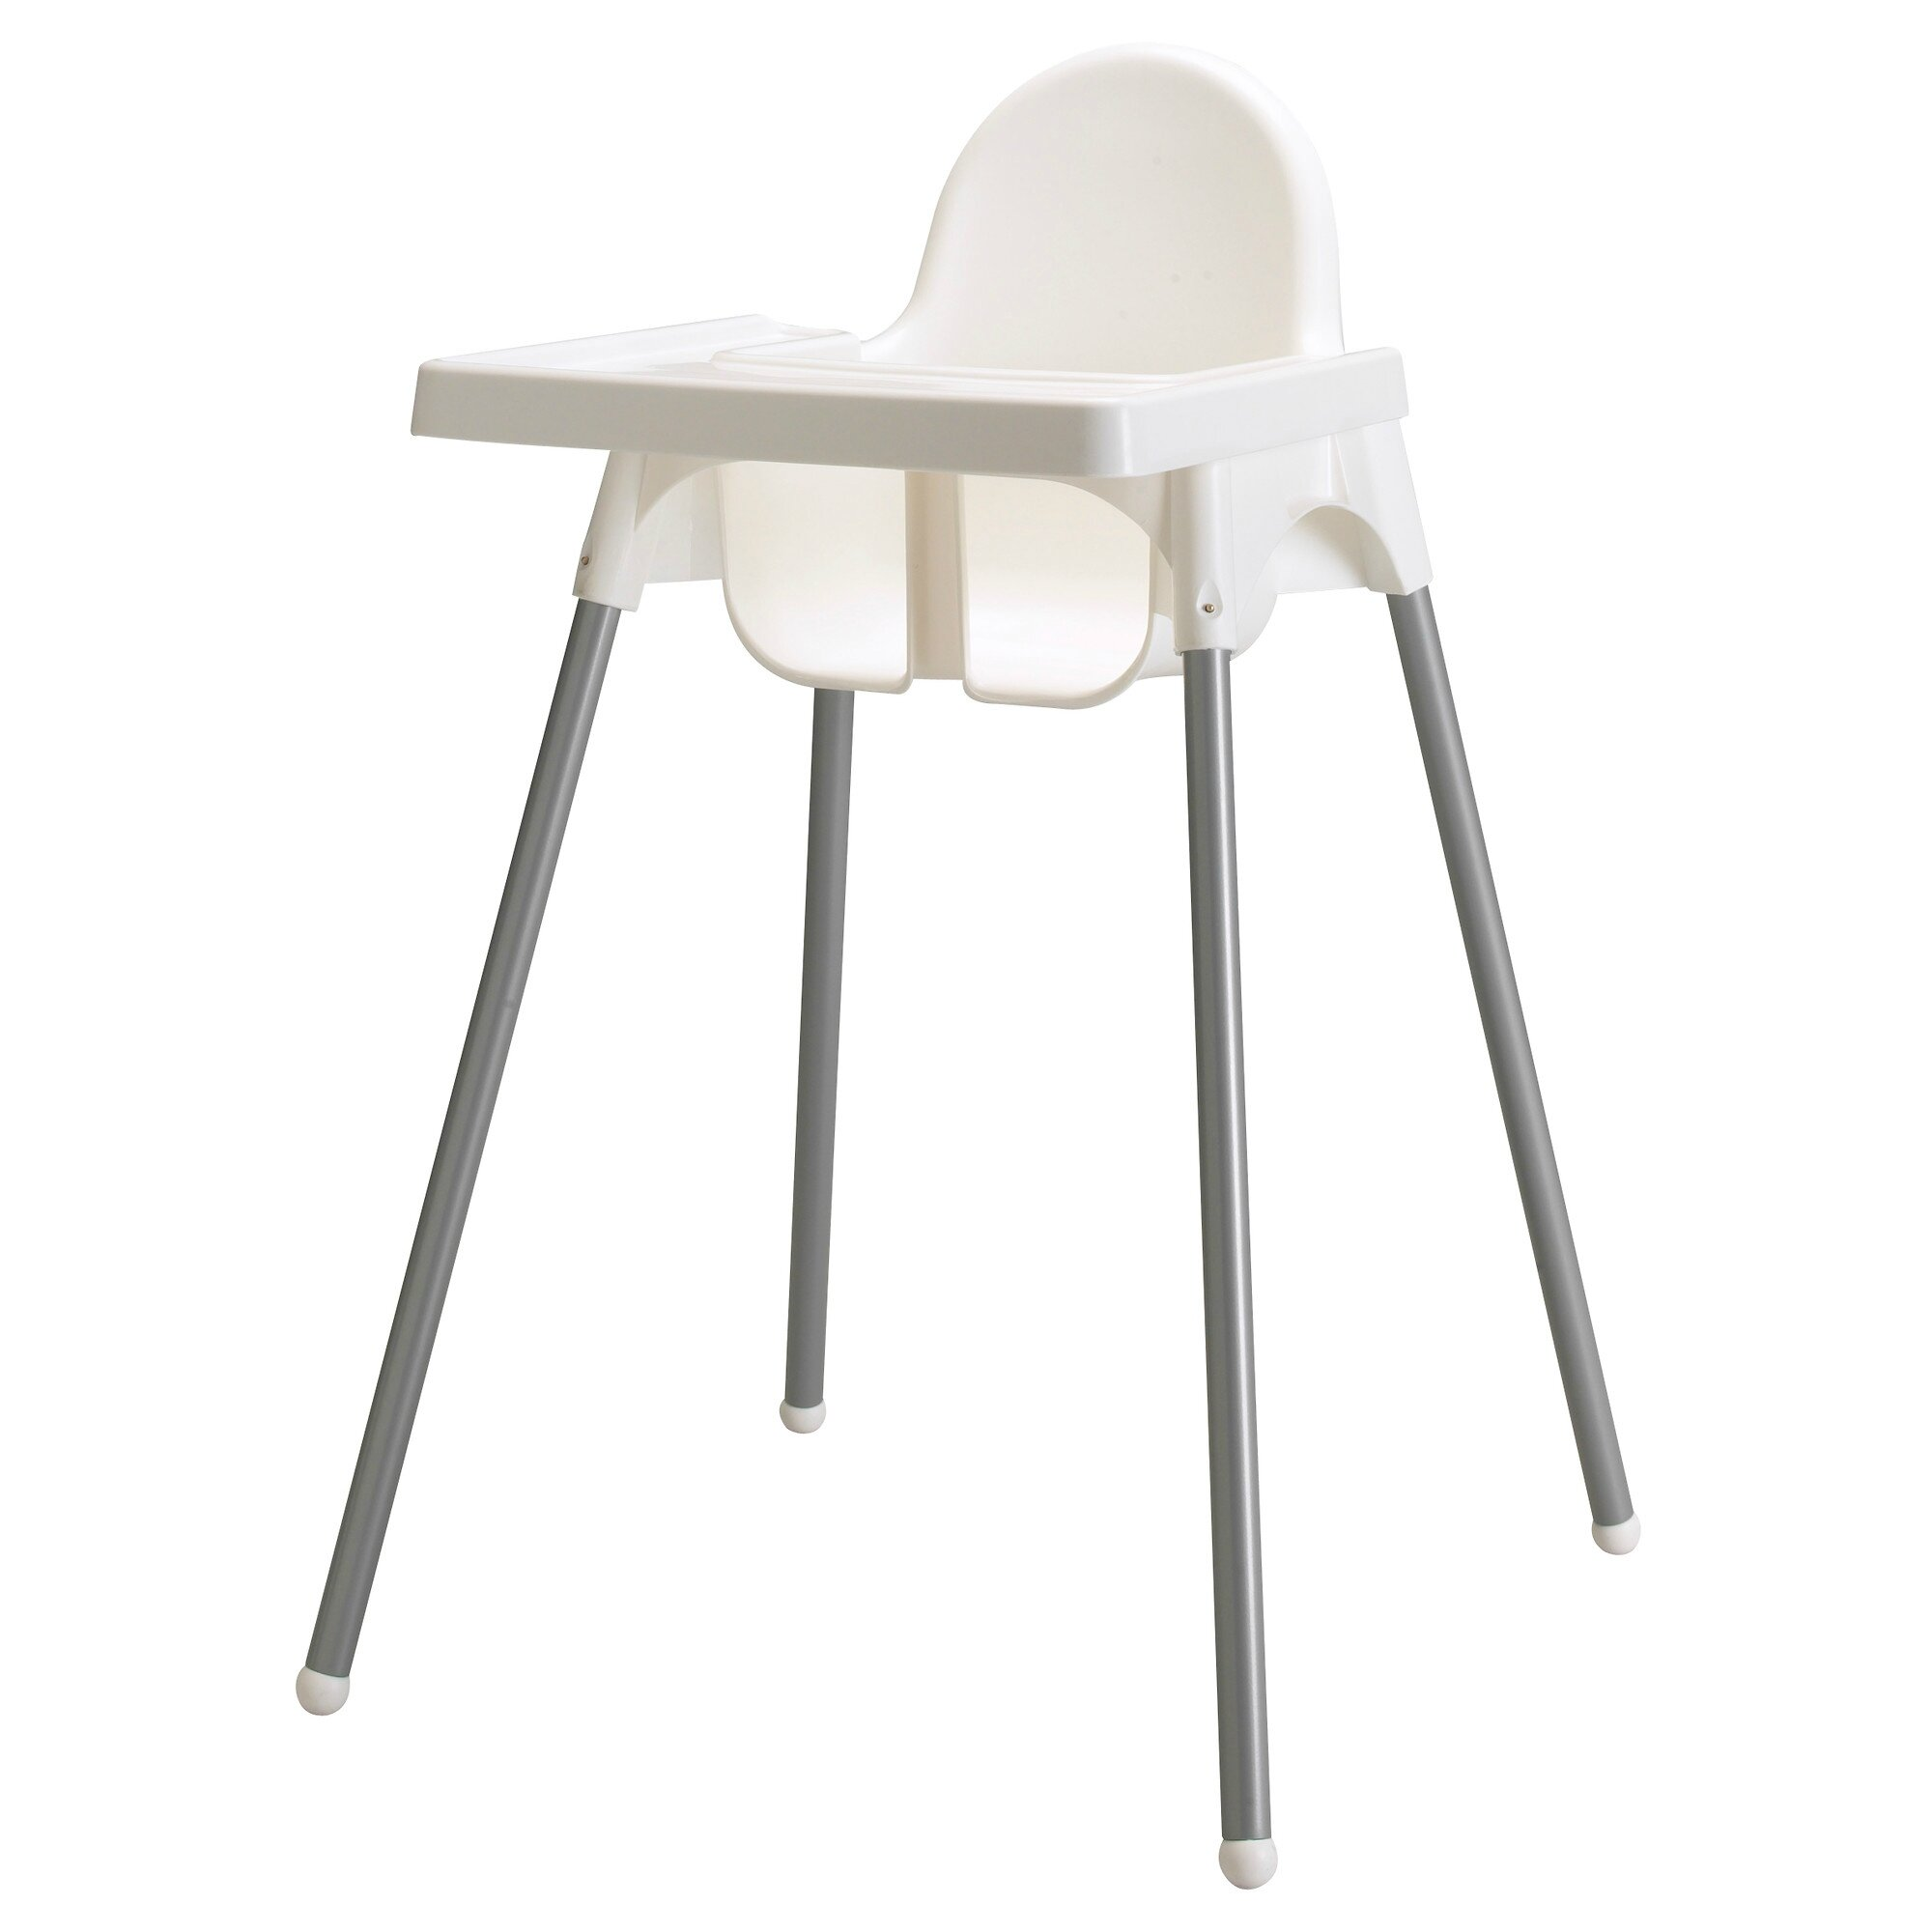 Chaise haute cuisine ikea estelle low legs to go with diy for Chaise haute ikea